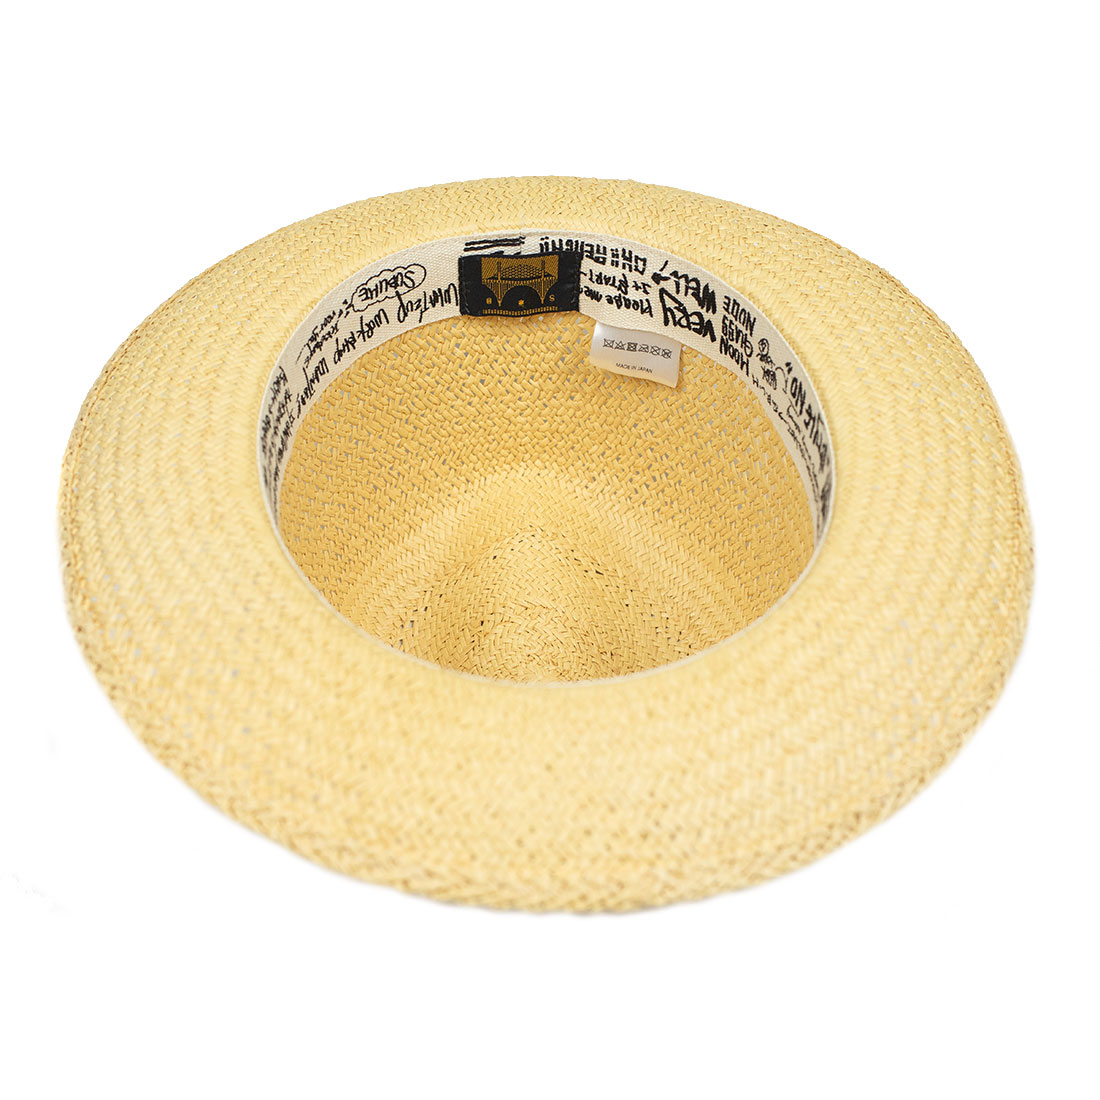 Sublime Hats Made in Japan Spring Summer 2021 SS21 PanamaHat Straw Hat  (8).jpg